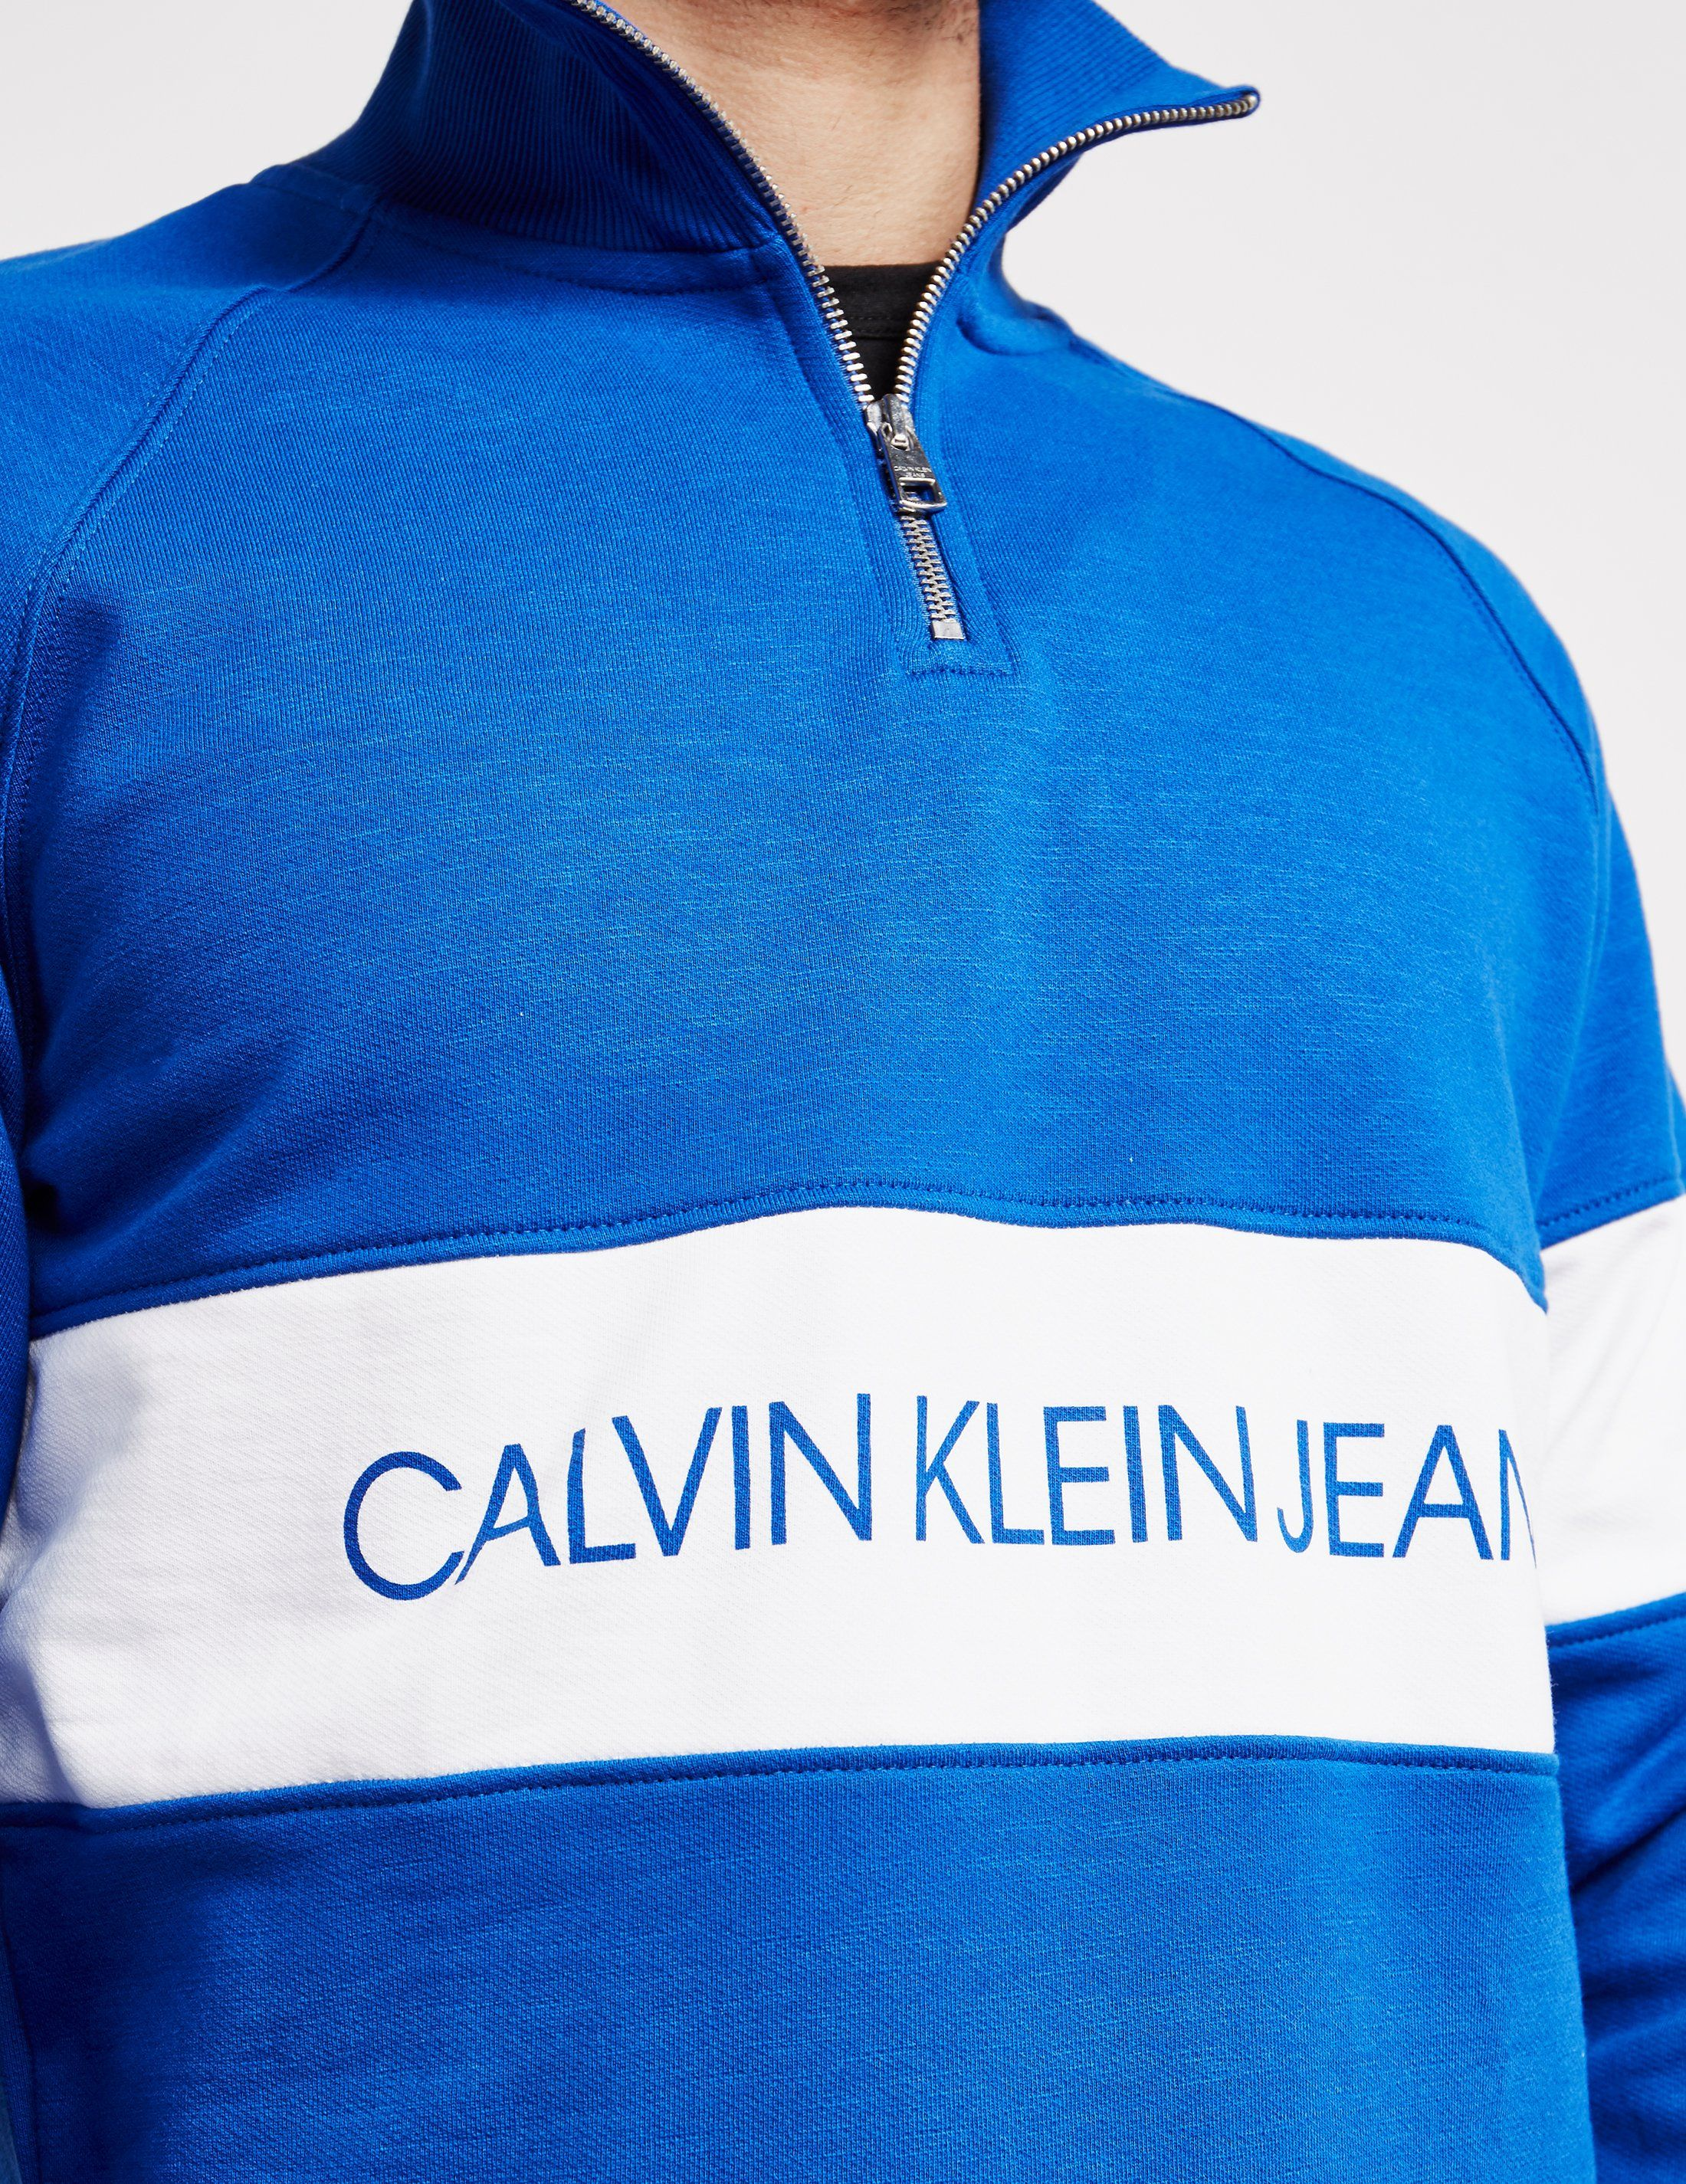 Calvin Klein Jeans Institutional Half Zip Sweatshirt